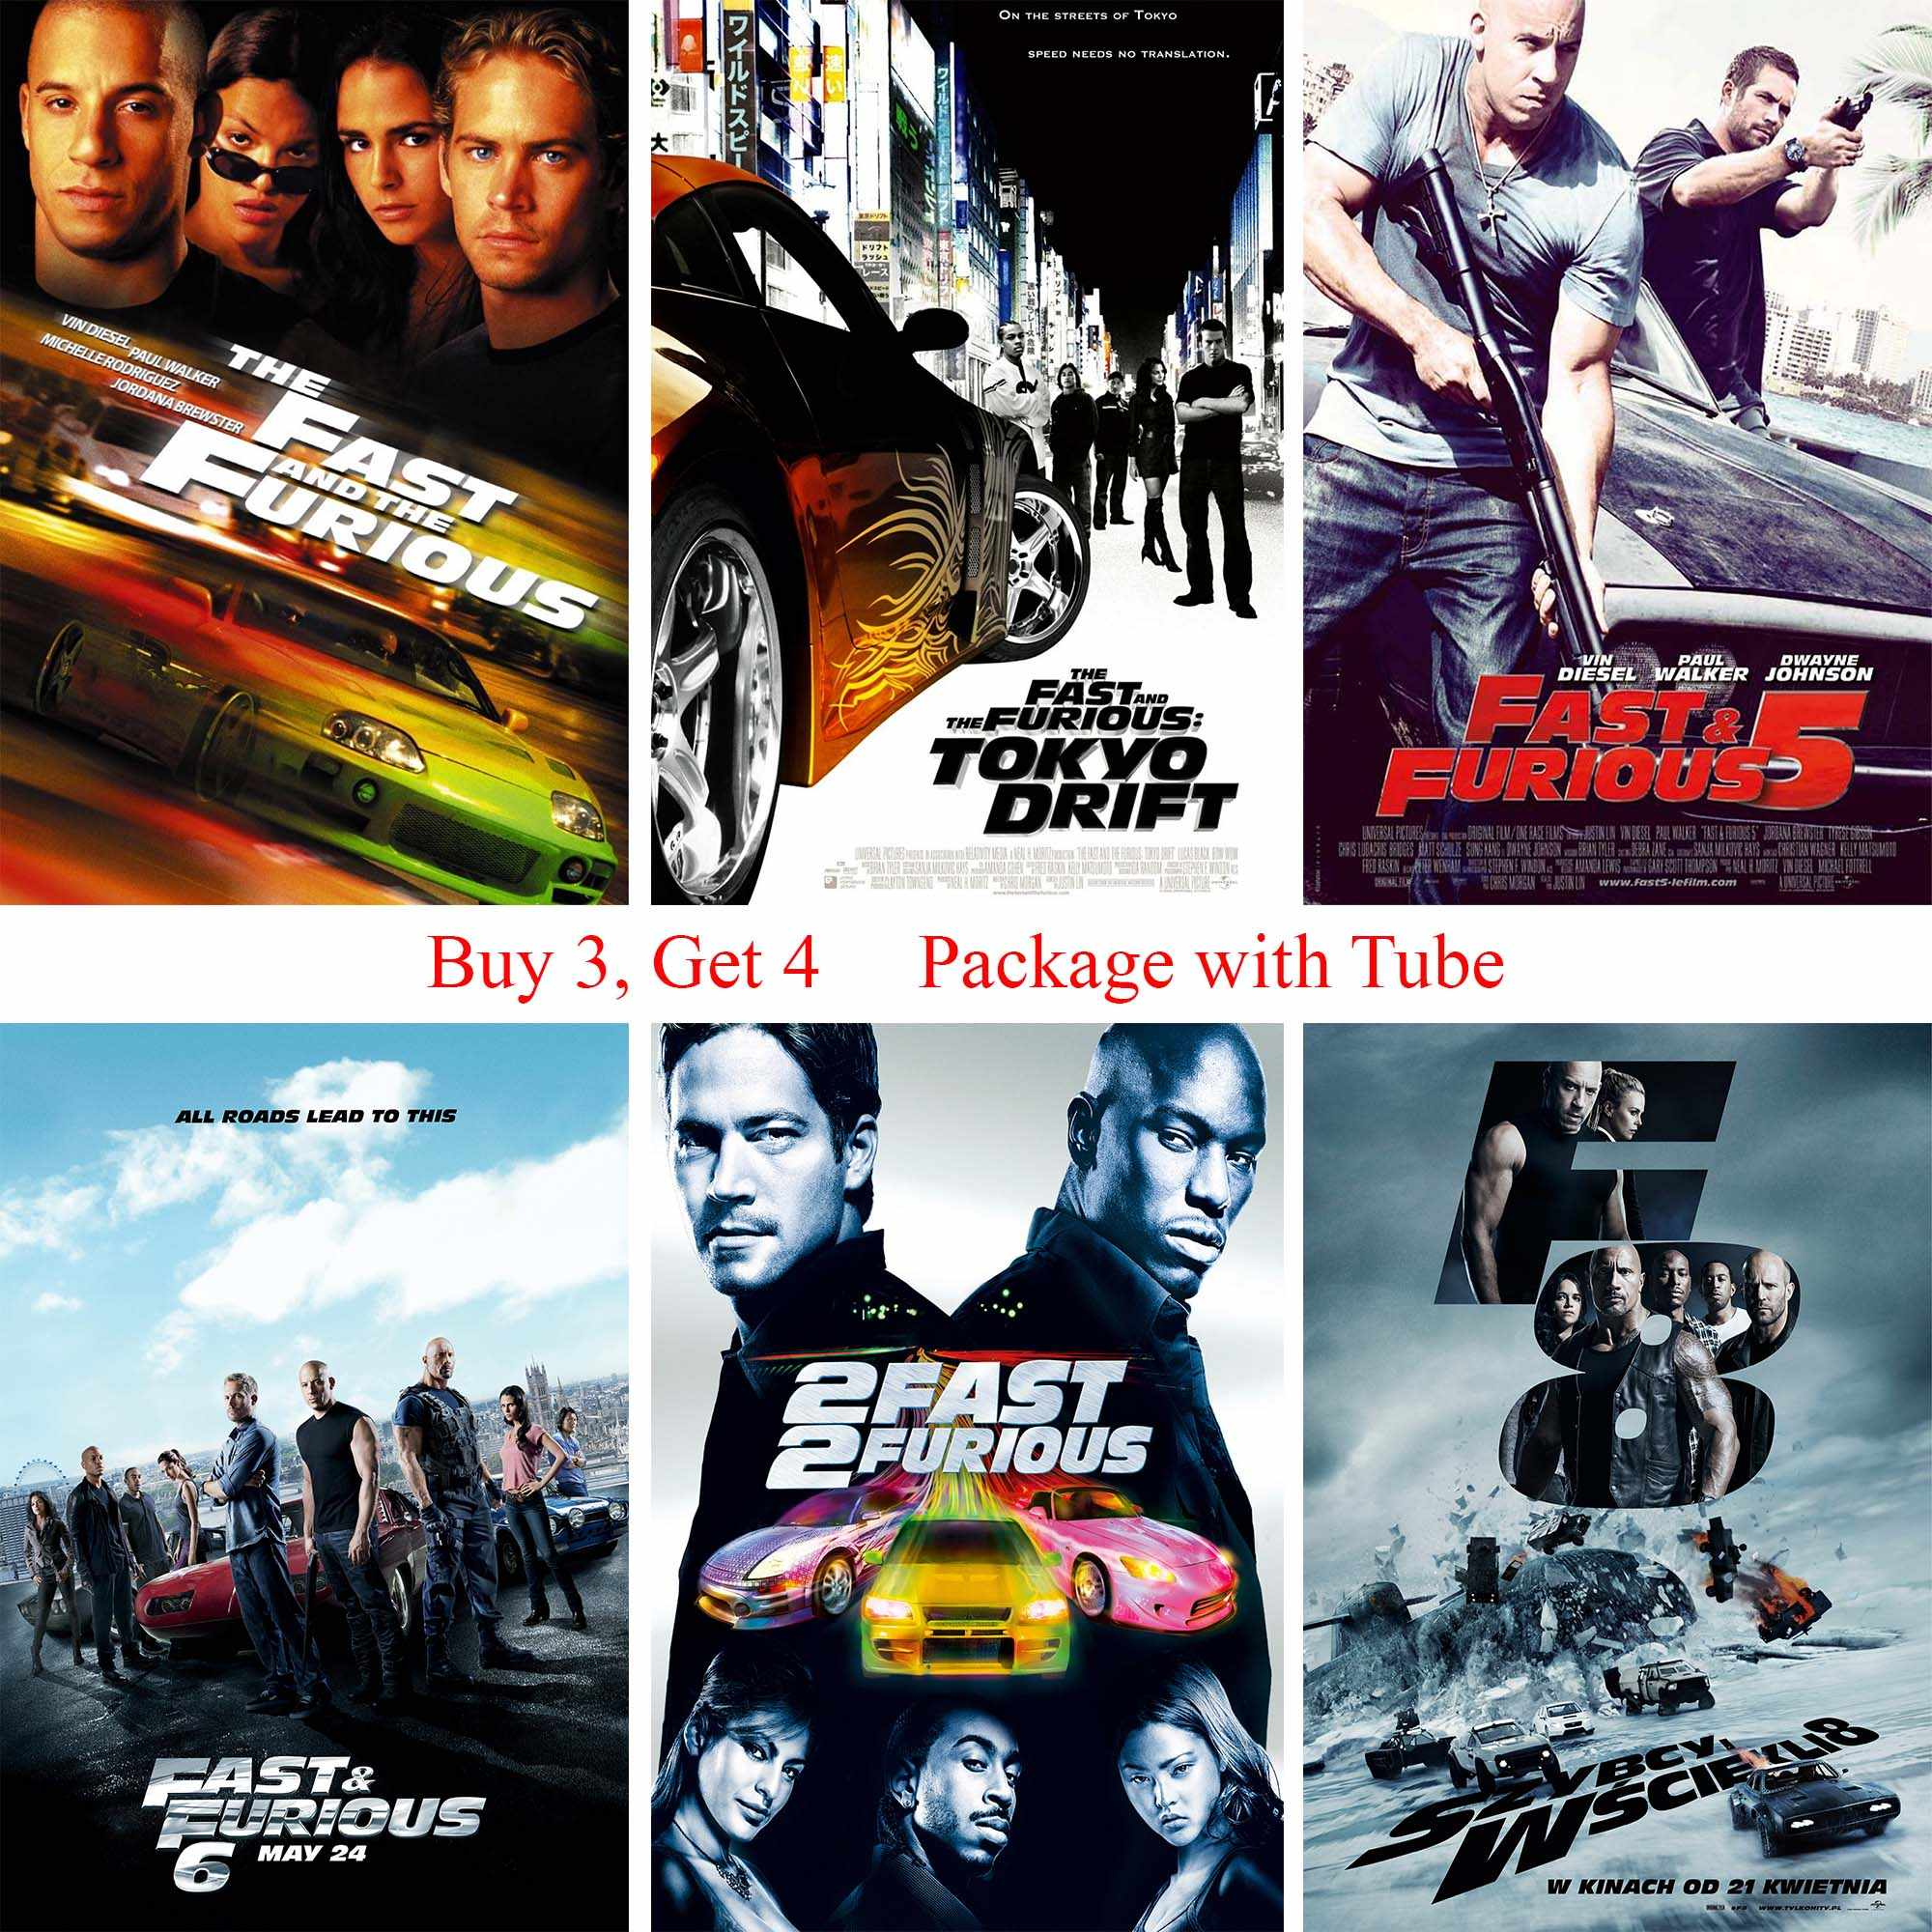 fast furious movie posters clear image wall stickers for livingroom bedroom home art brand